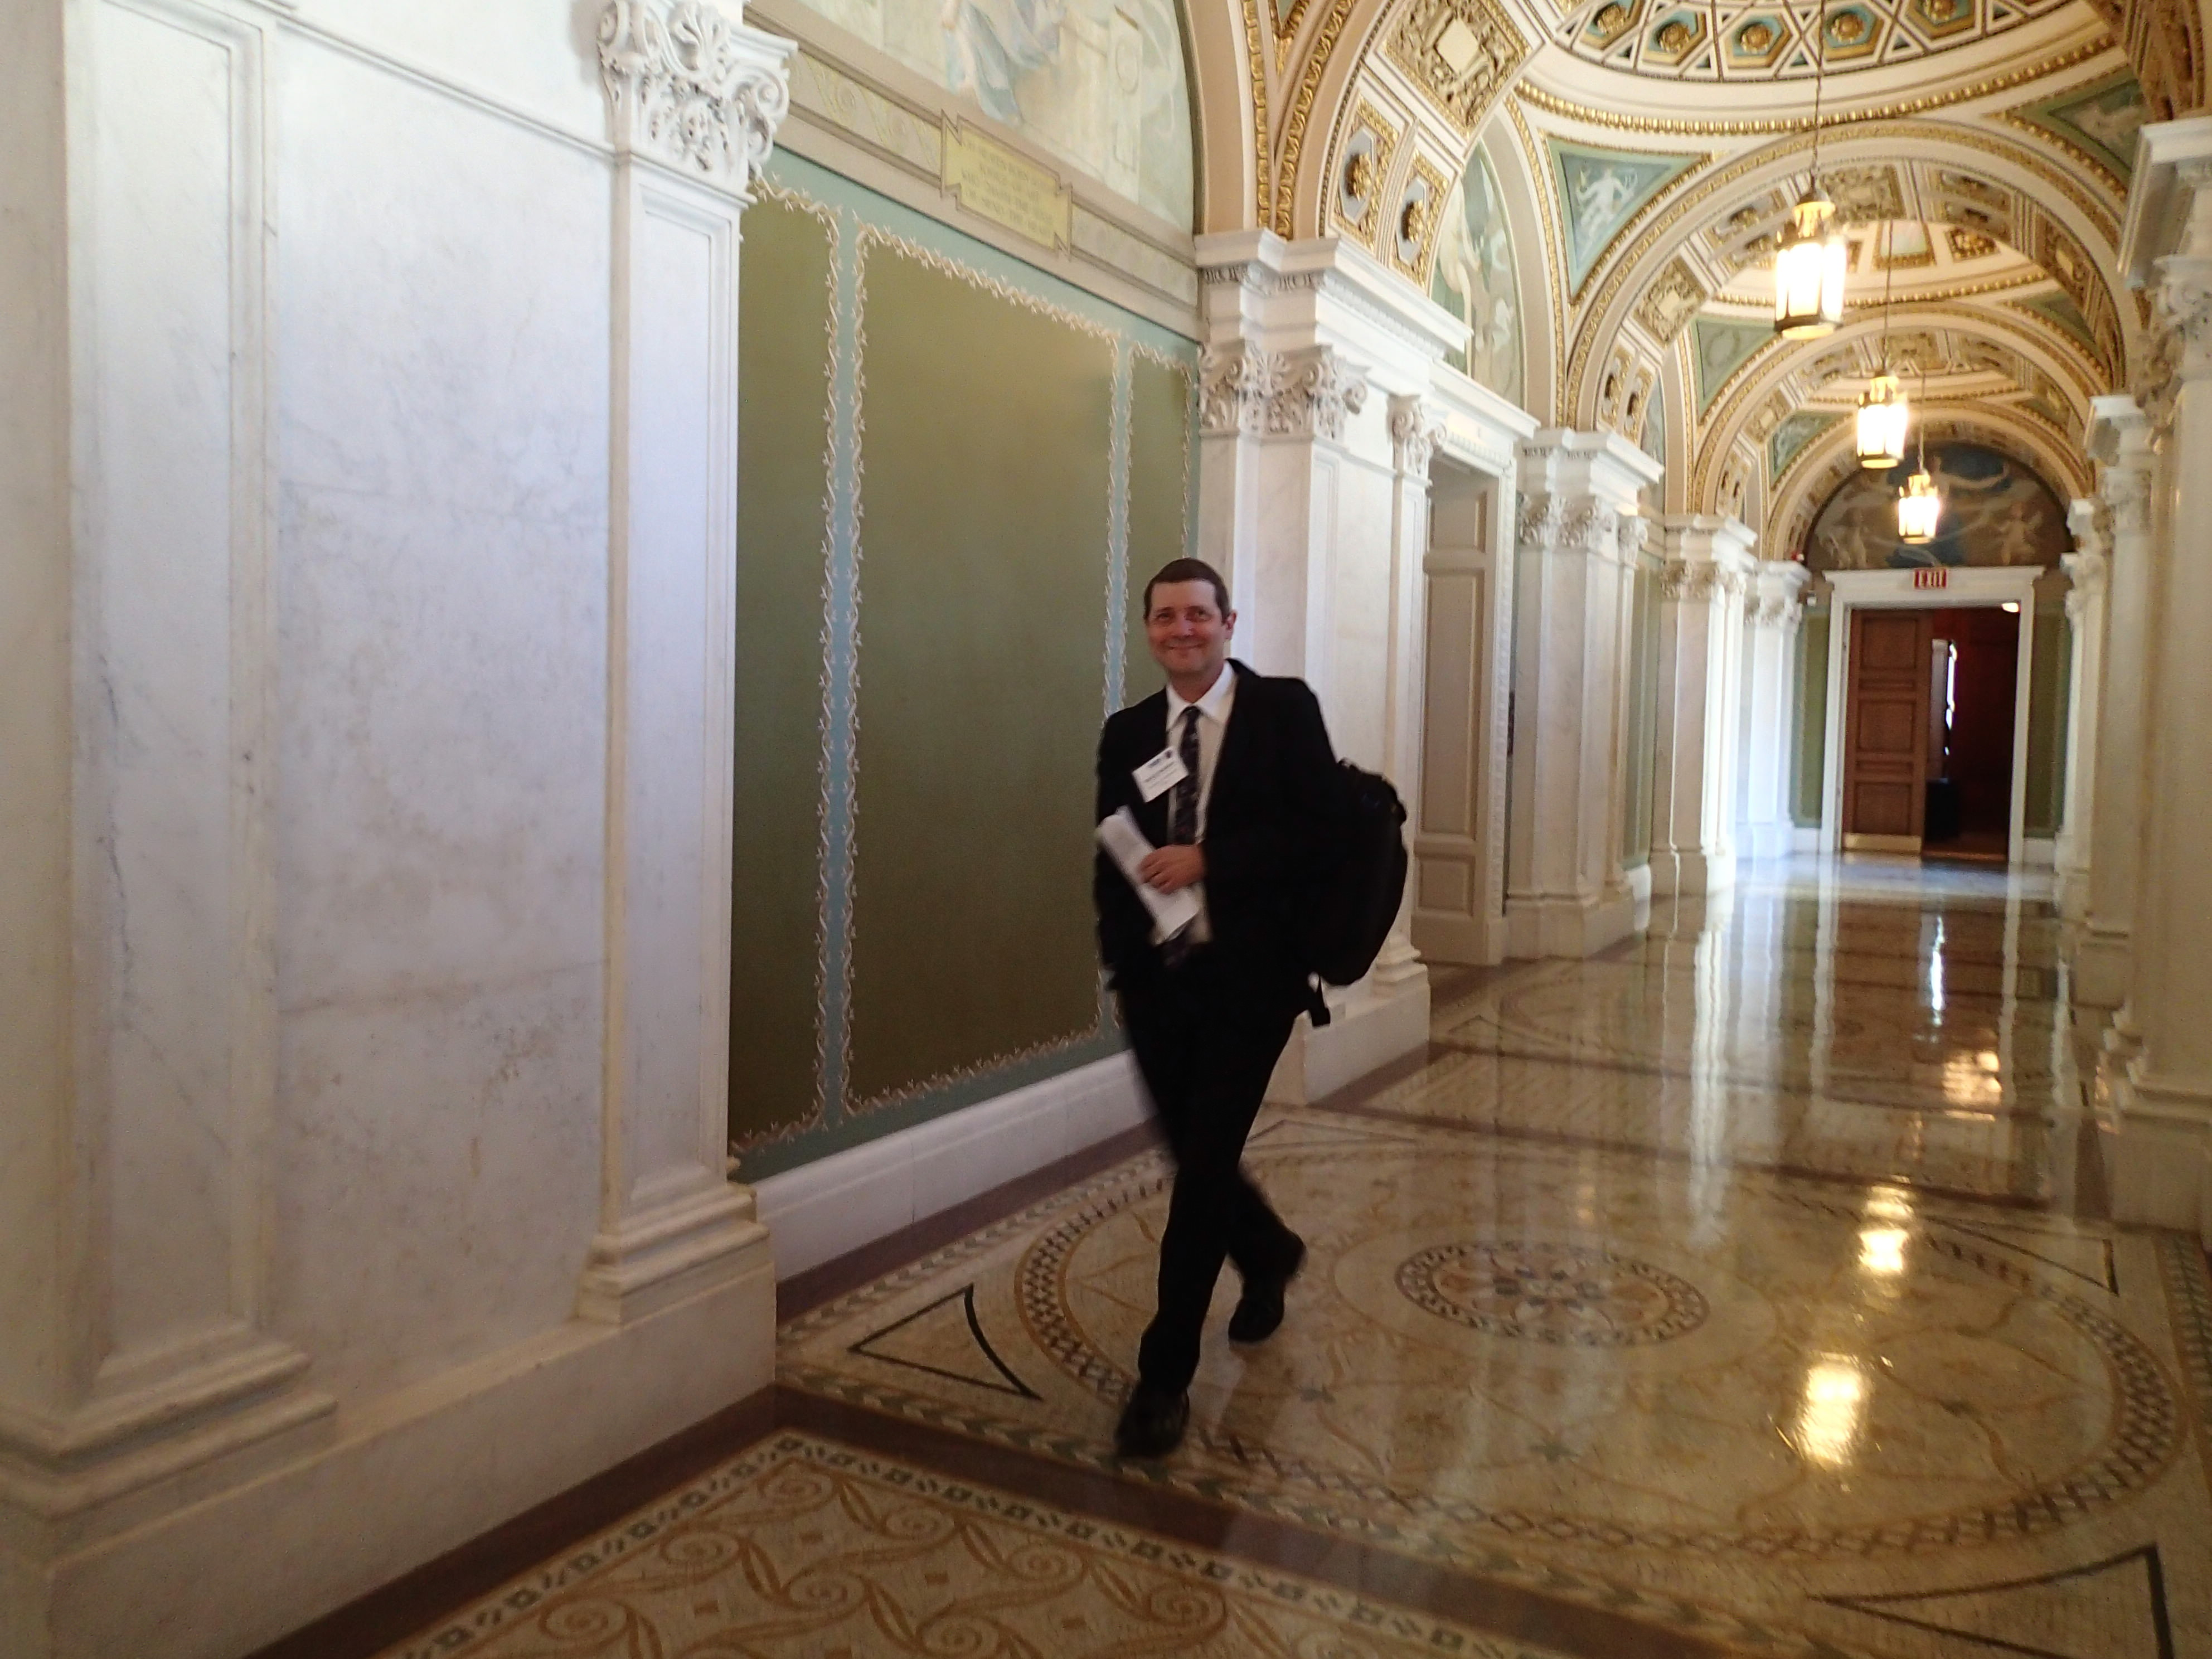 Randy Wadkins, BPS's 2016-17 Congressional Fellow, in the Halls of Congress.